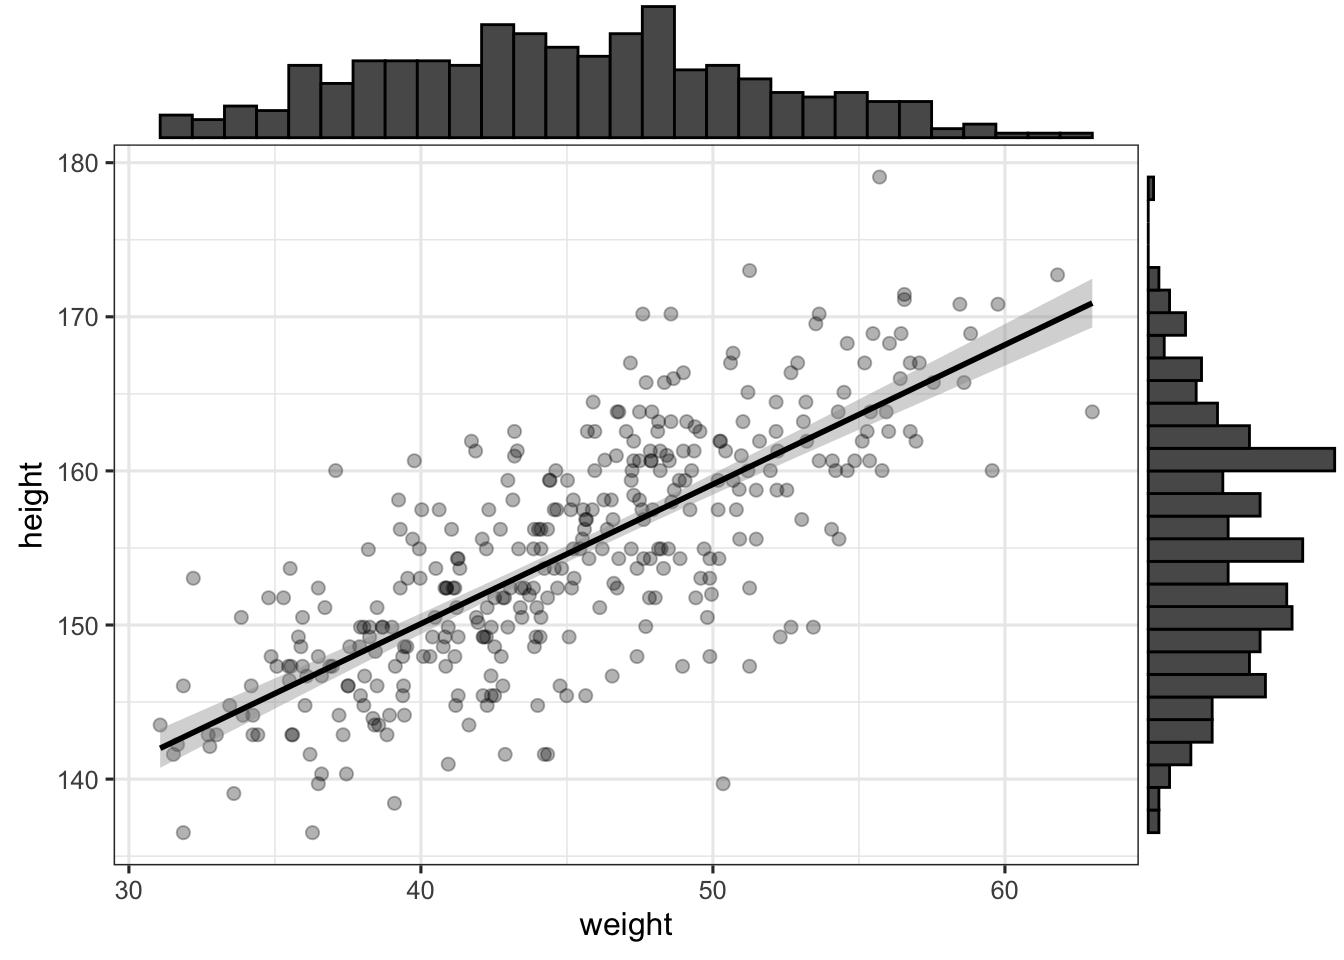 Using R to make sense of the generalised linear model